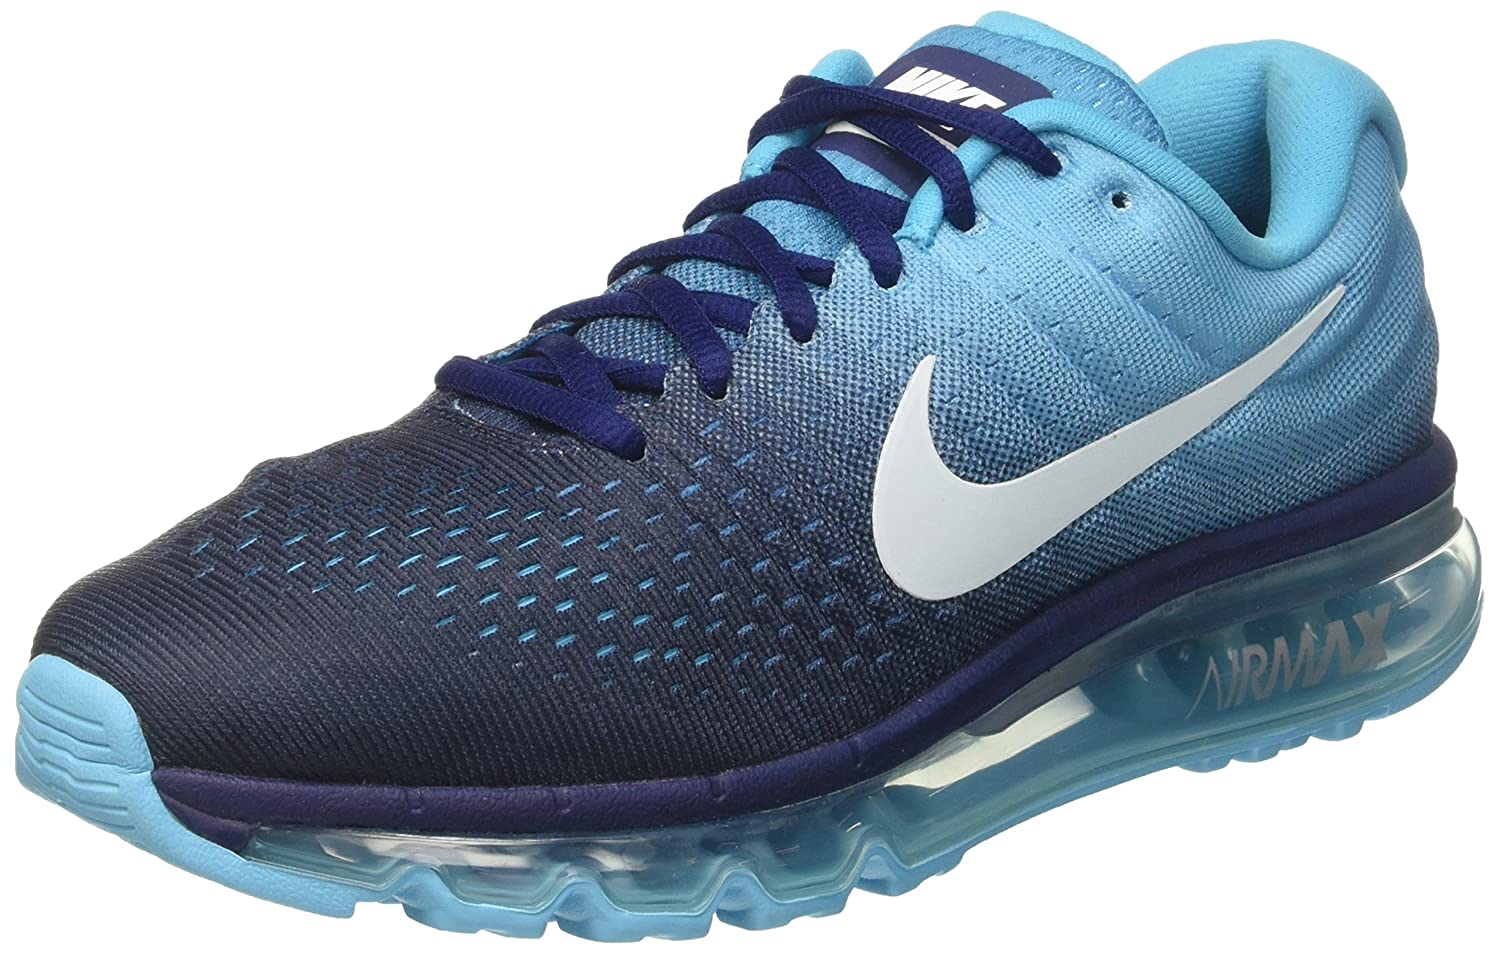 sports shoes a16fd 357bf Nike Men s Air Max 2017 Running Shoes, Turquoise (Binary Glacier Chlorine  Blue), 7 UK  Amazon.co.uk  Sports   Outdoors